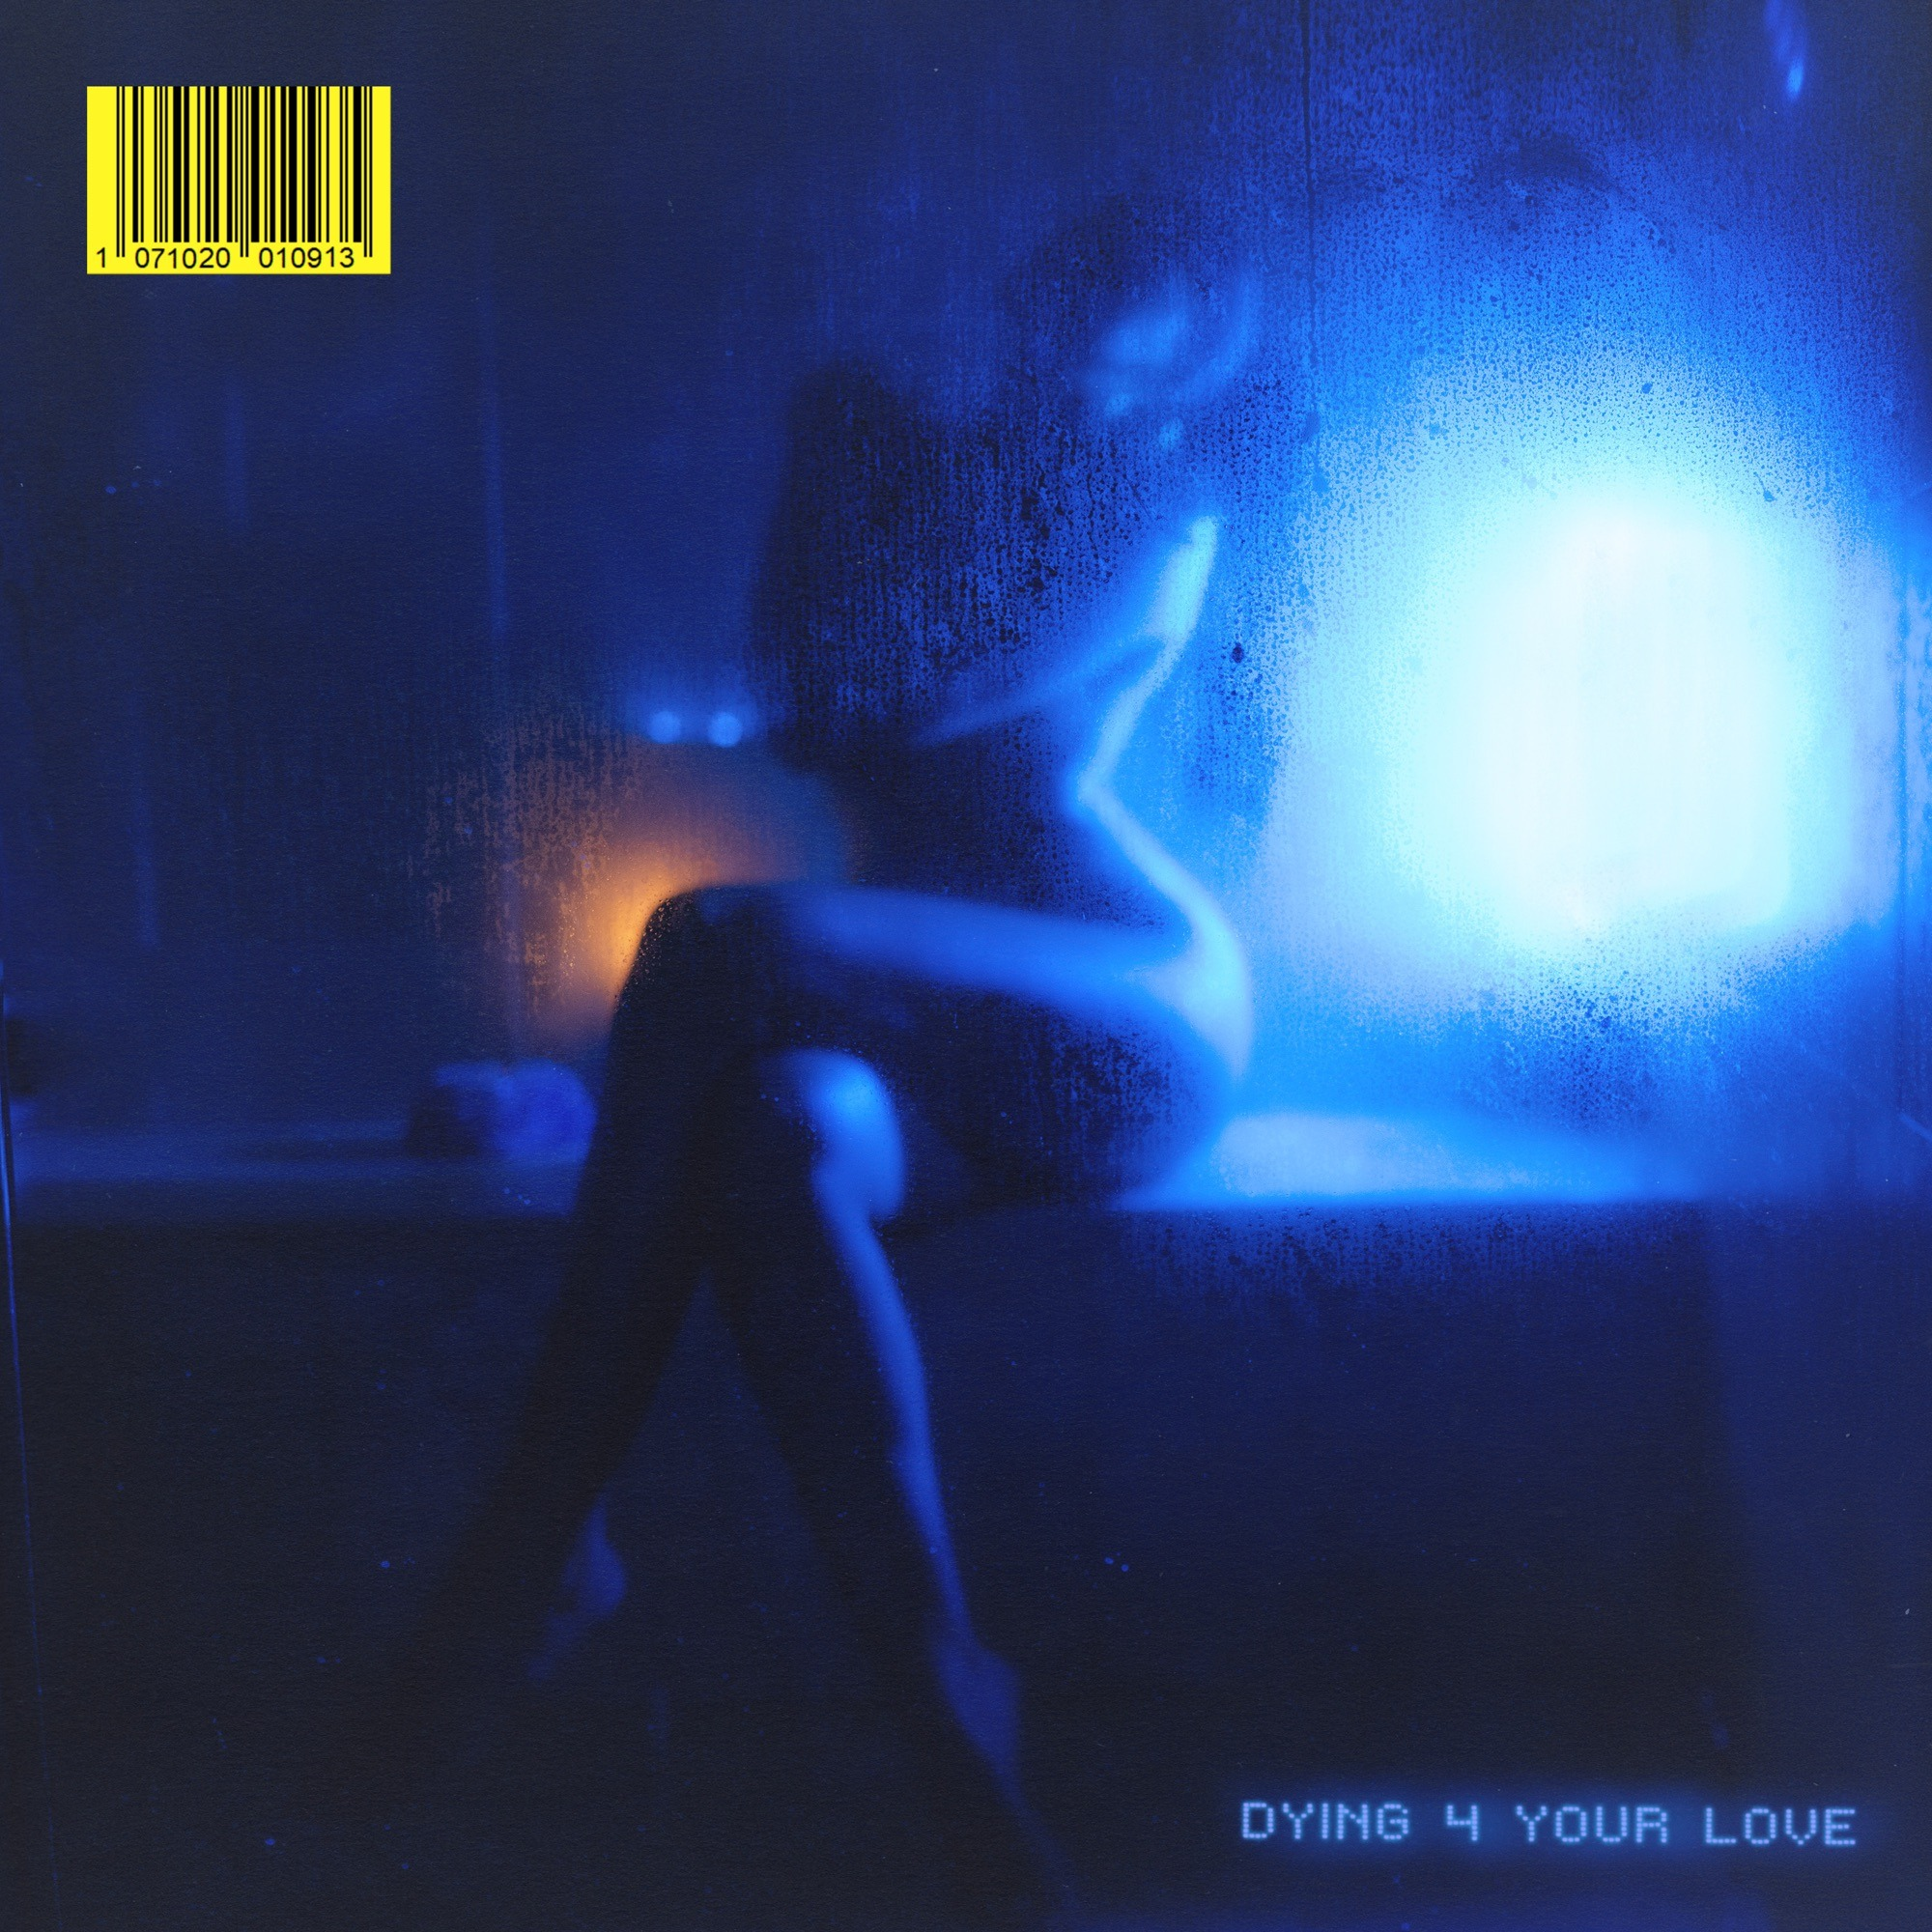 New Single: Snoh Aalegra - DYING 4 YOUR LOVE